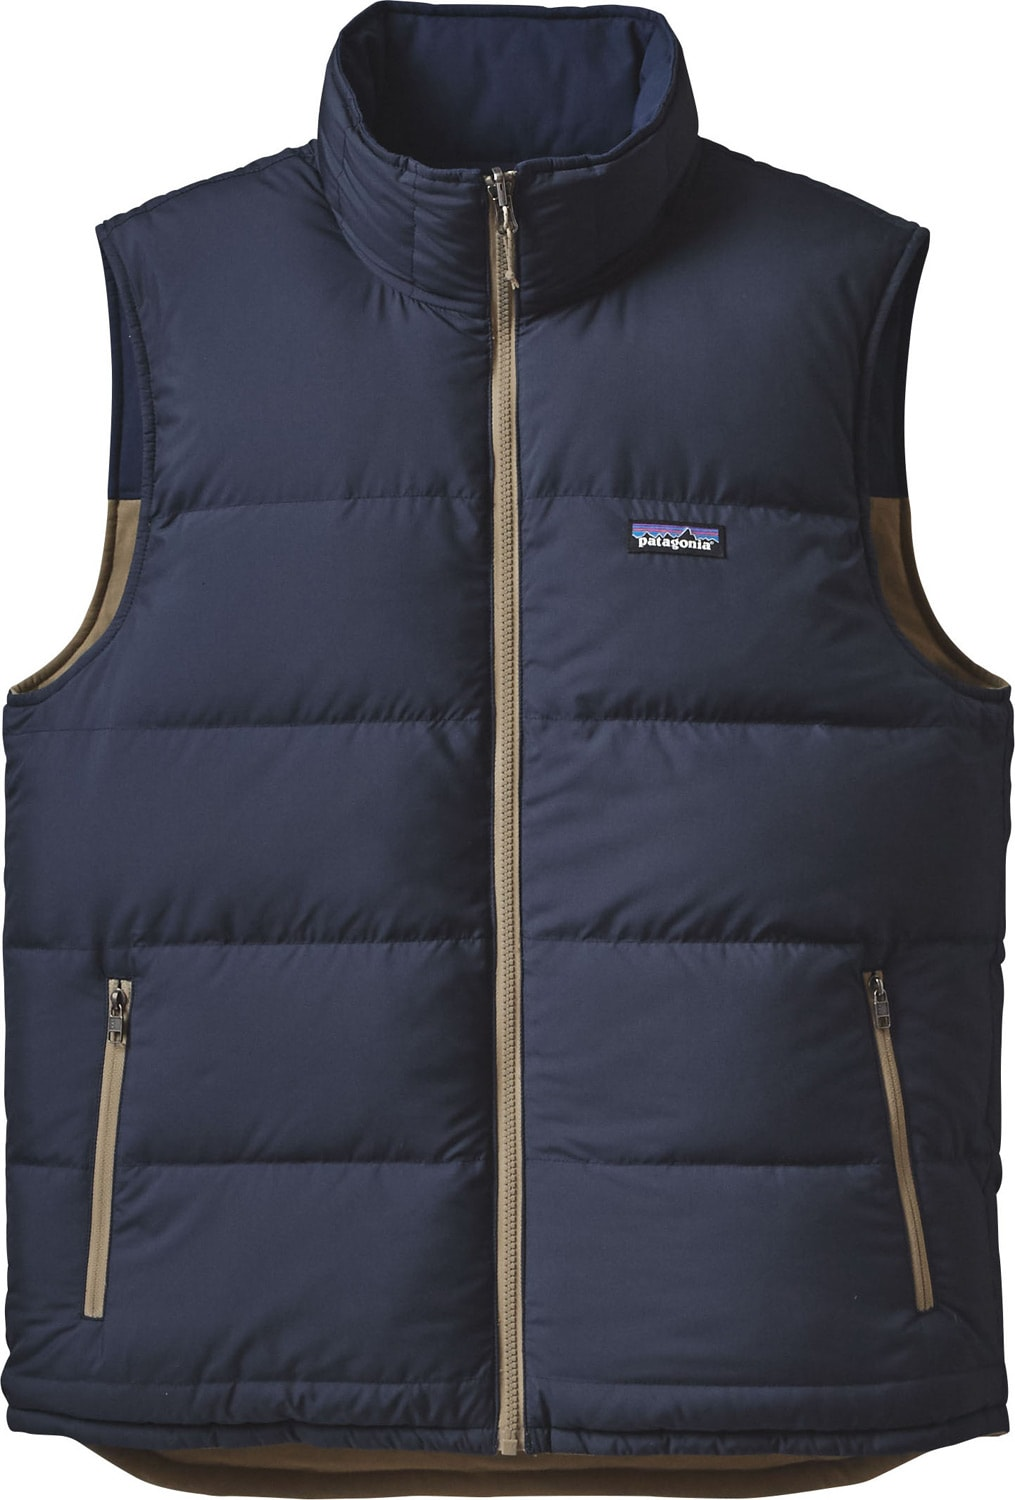 Buy Orange Slim Fit Vest by Gentwith.com with Free Shipping